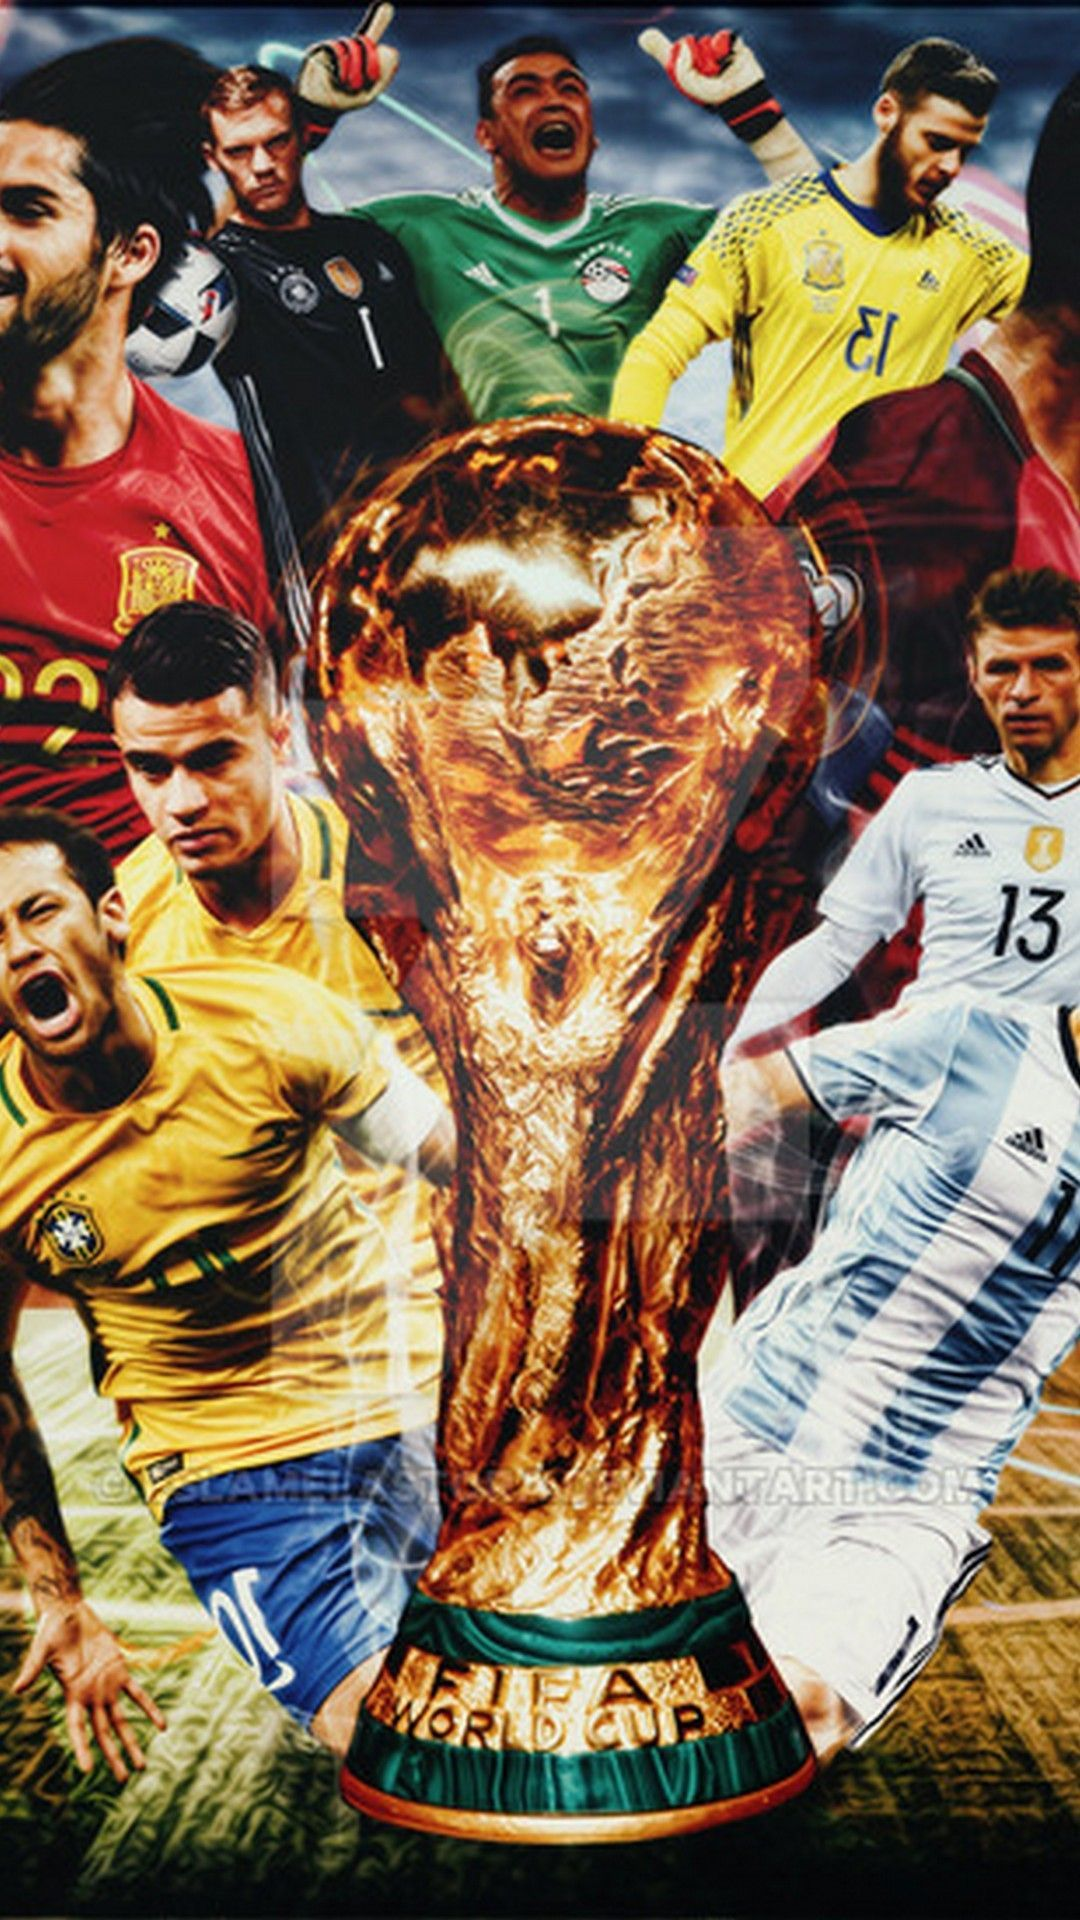 World Cup Soccer Wallpaper Android Android Wallpaper Fifa World Cup World Cup